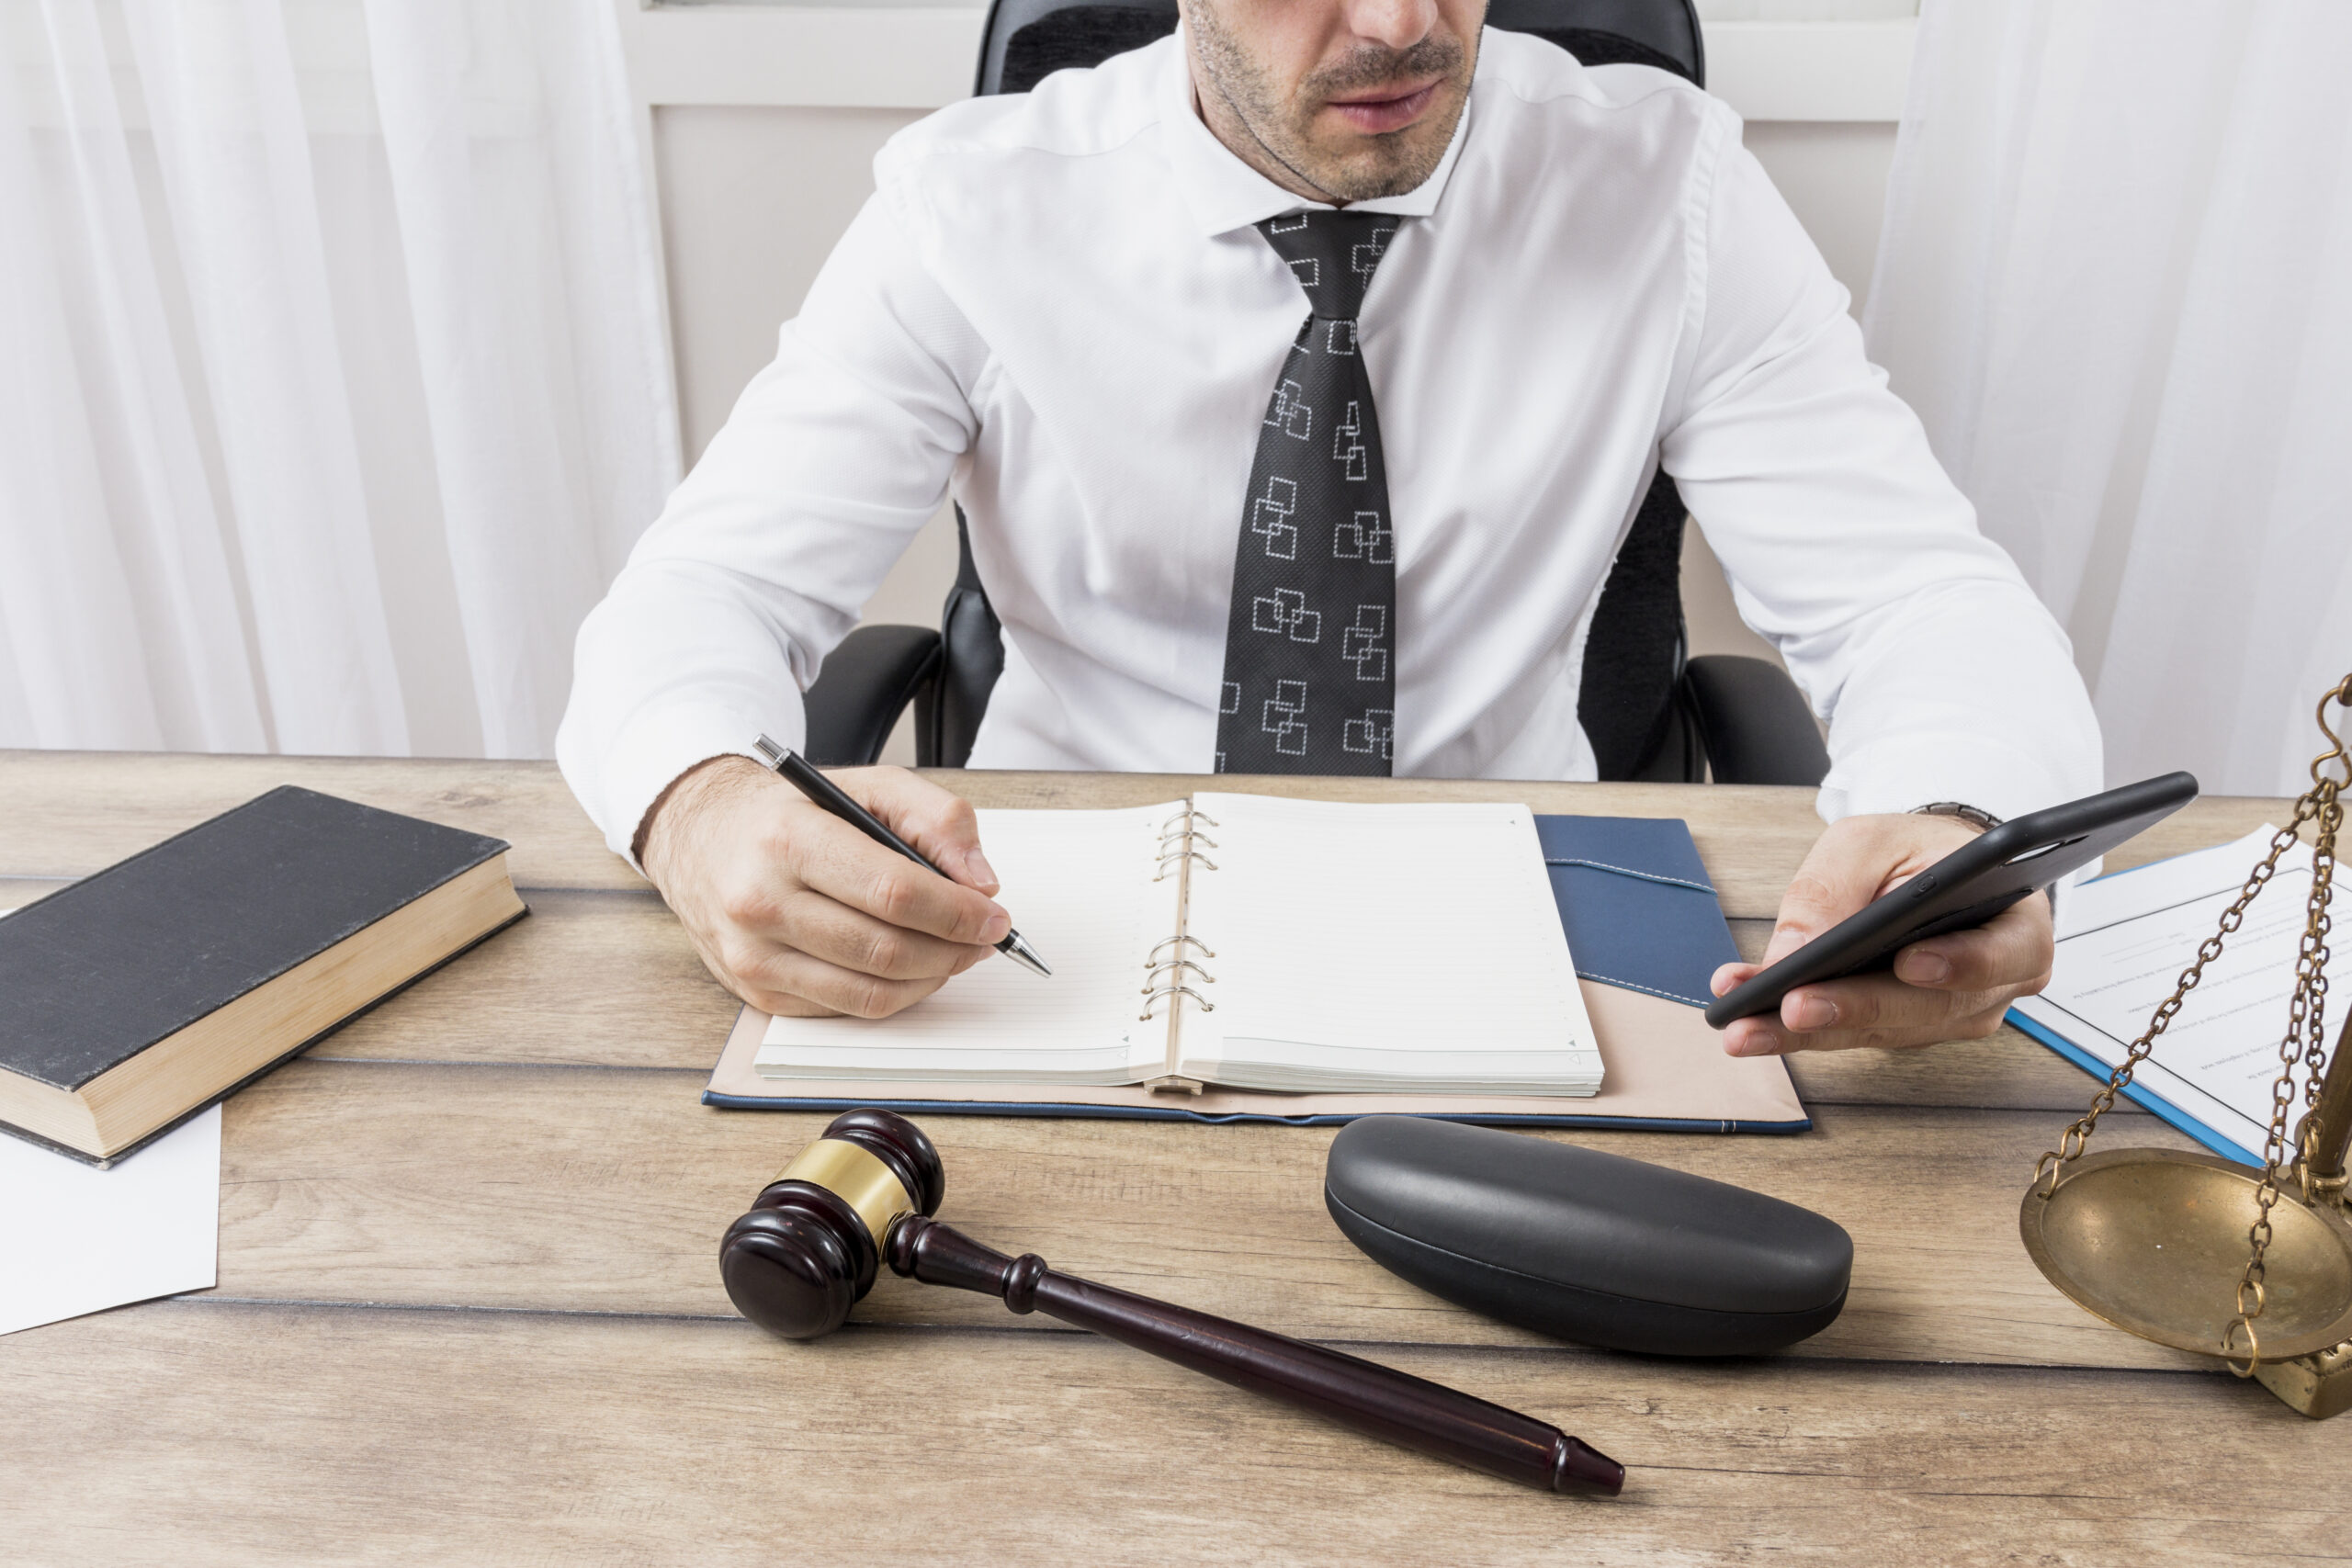 Online Notary Service - Mobile Notary Services Connecticut